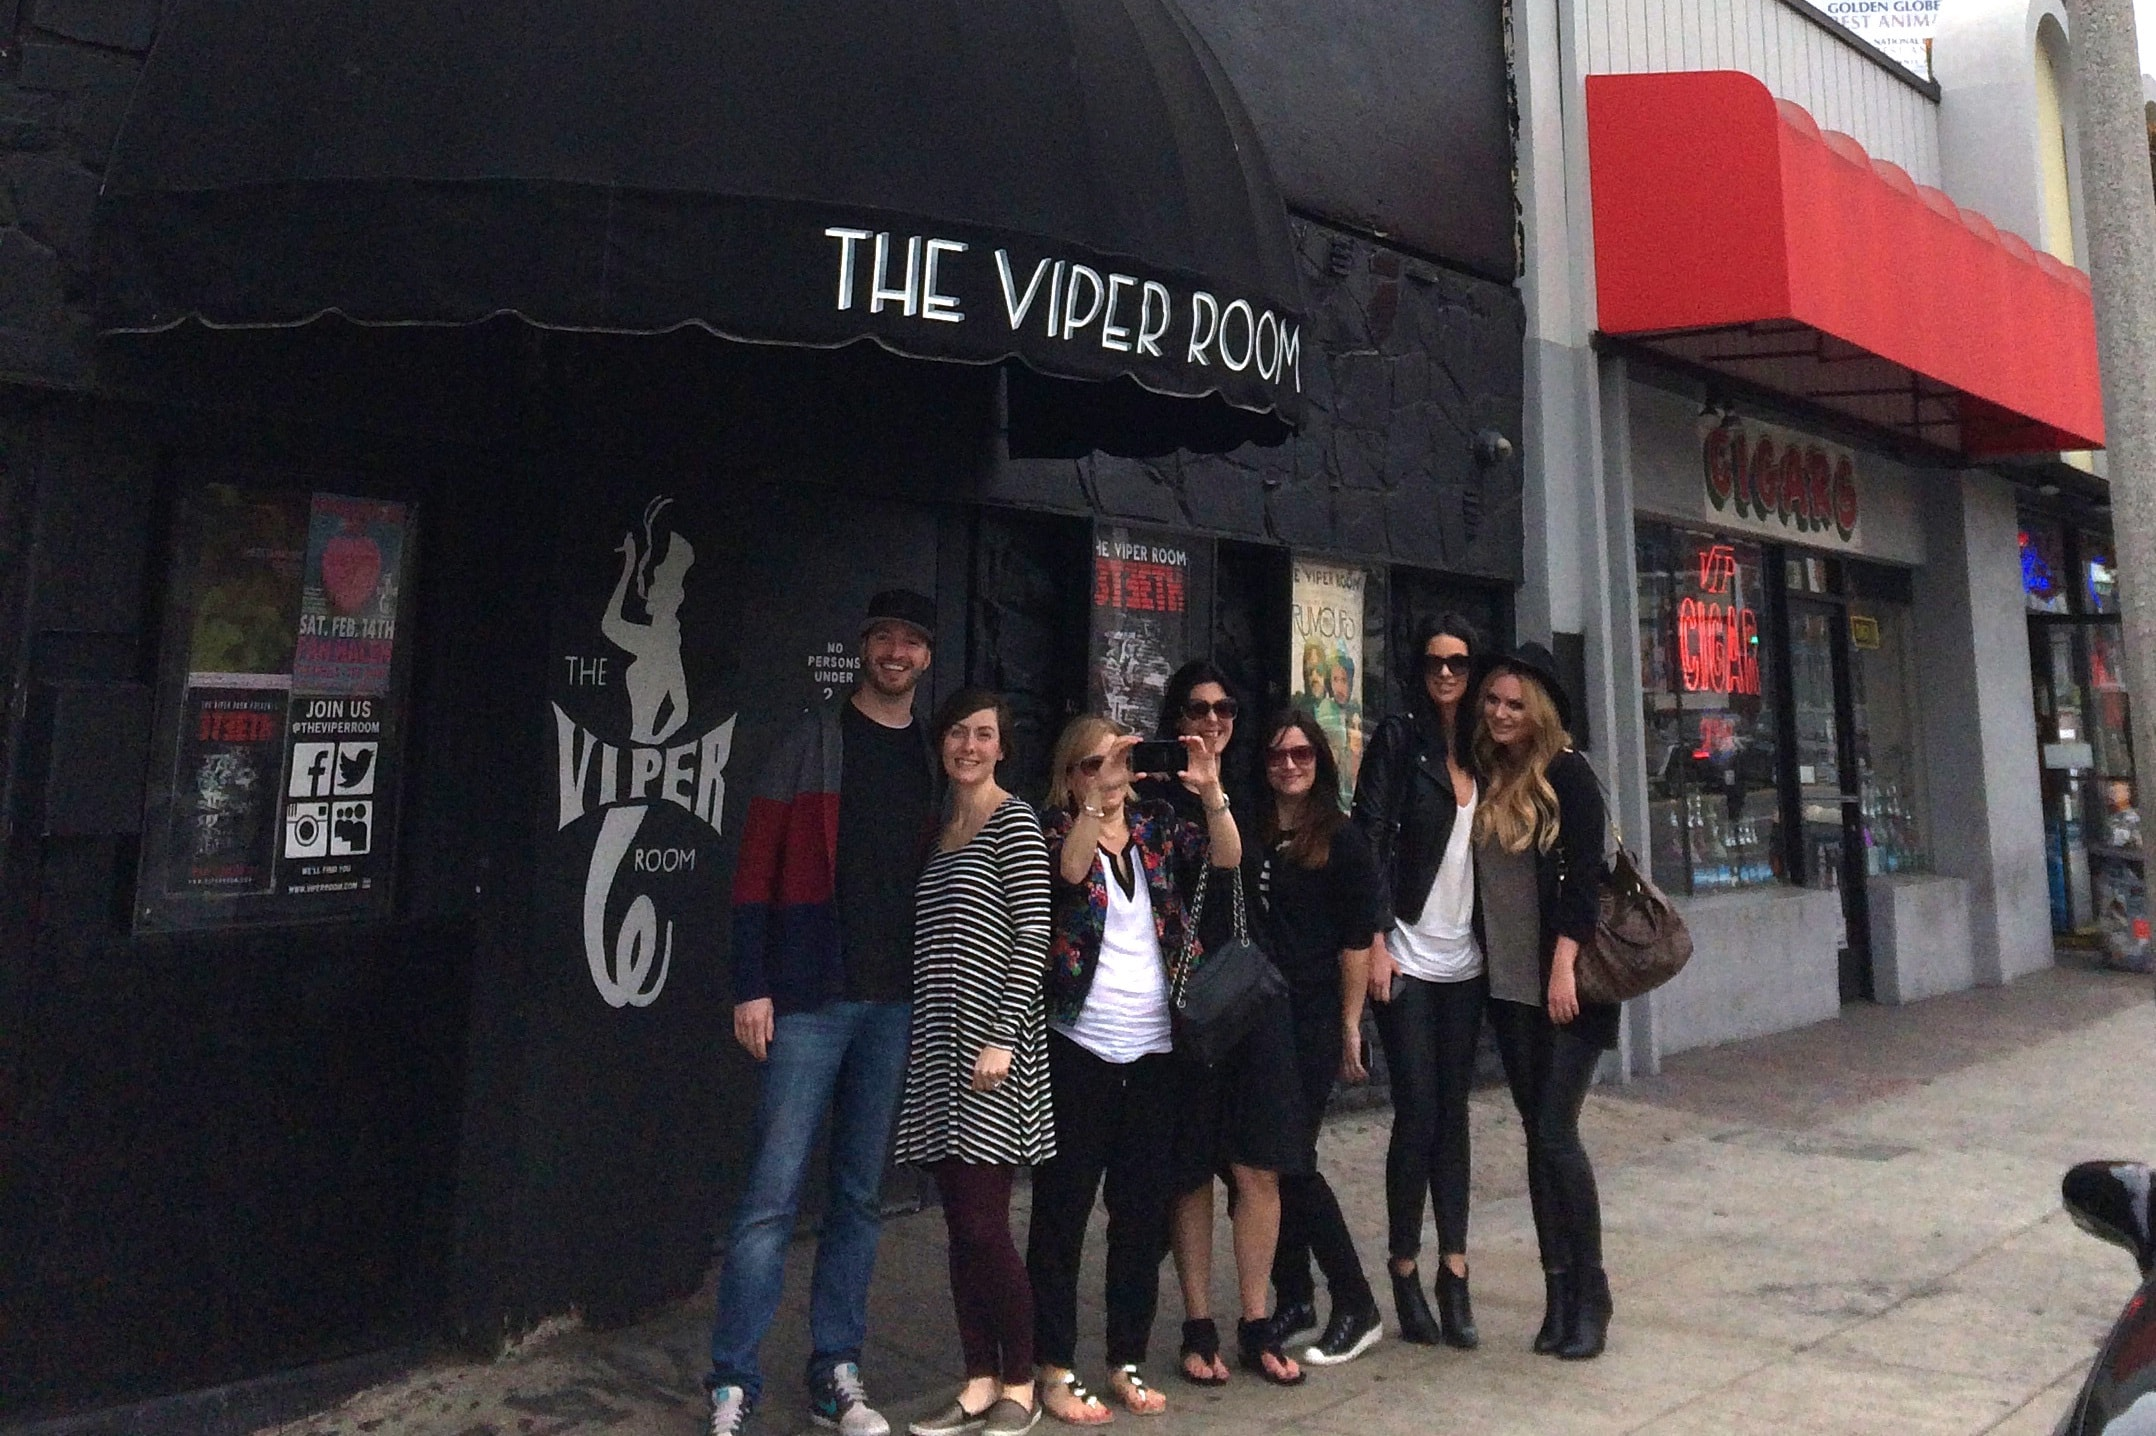 Group in front of The Viper Room